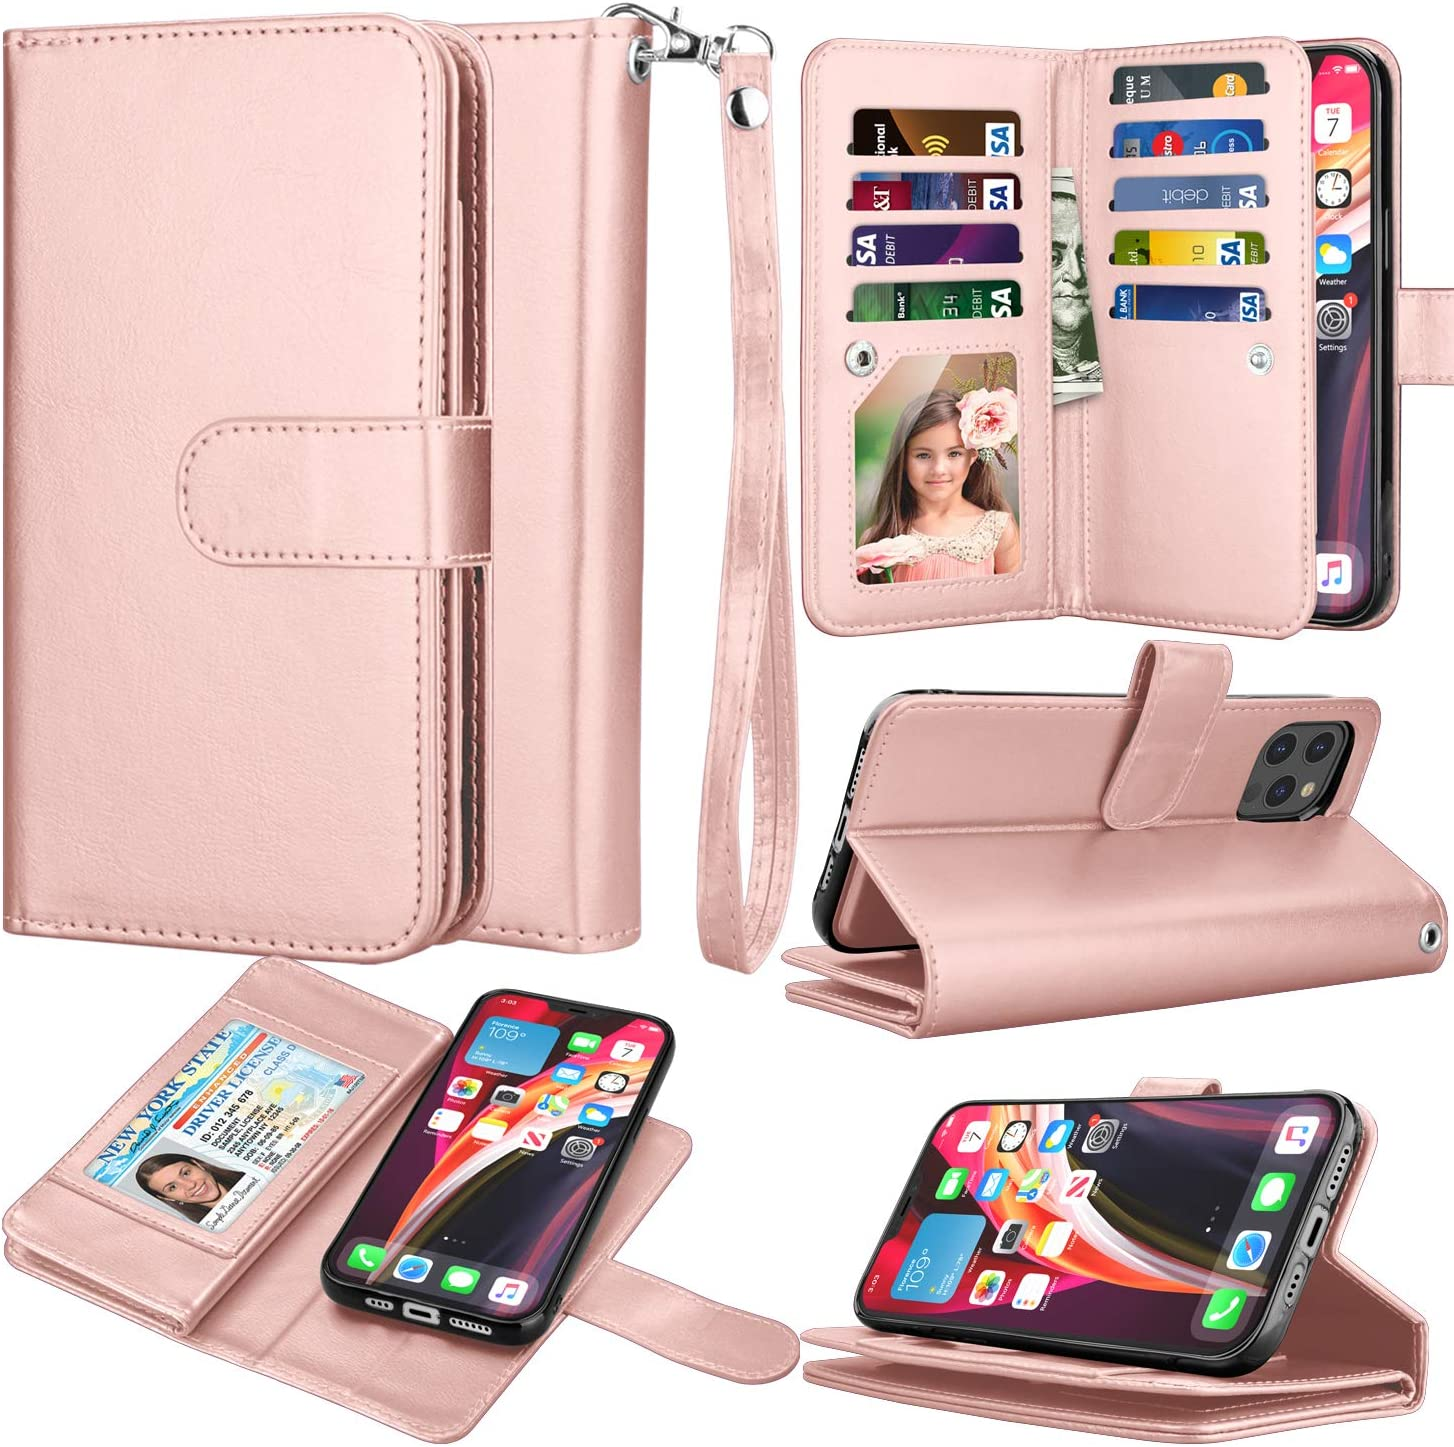 Takfox Wallet Phone Case Compatible with iPhone 12 / iPhone 12 Pro 6.1 Wallet PU Leather Mutiple ID Credit Card Slots Holder Folio Flip Kickstand Detachable Magnetic Phone Case & Wrist Strap-Rose Gold